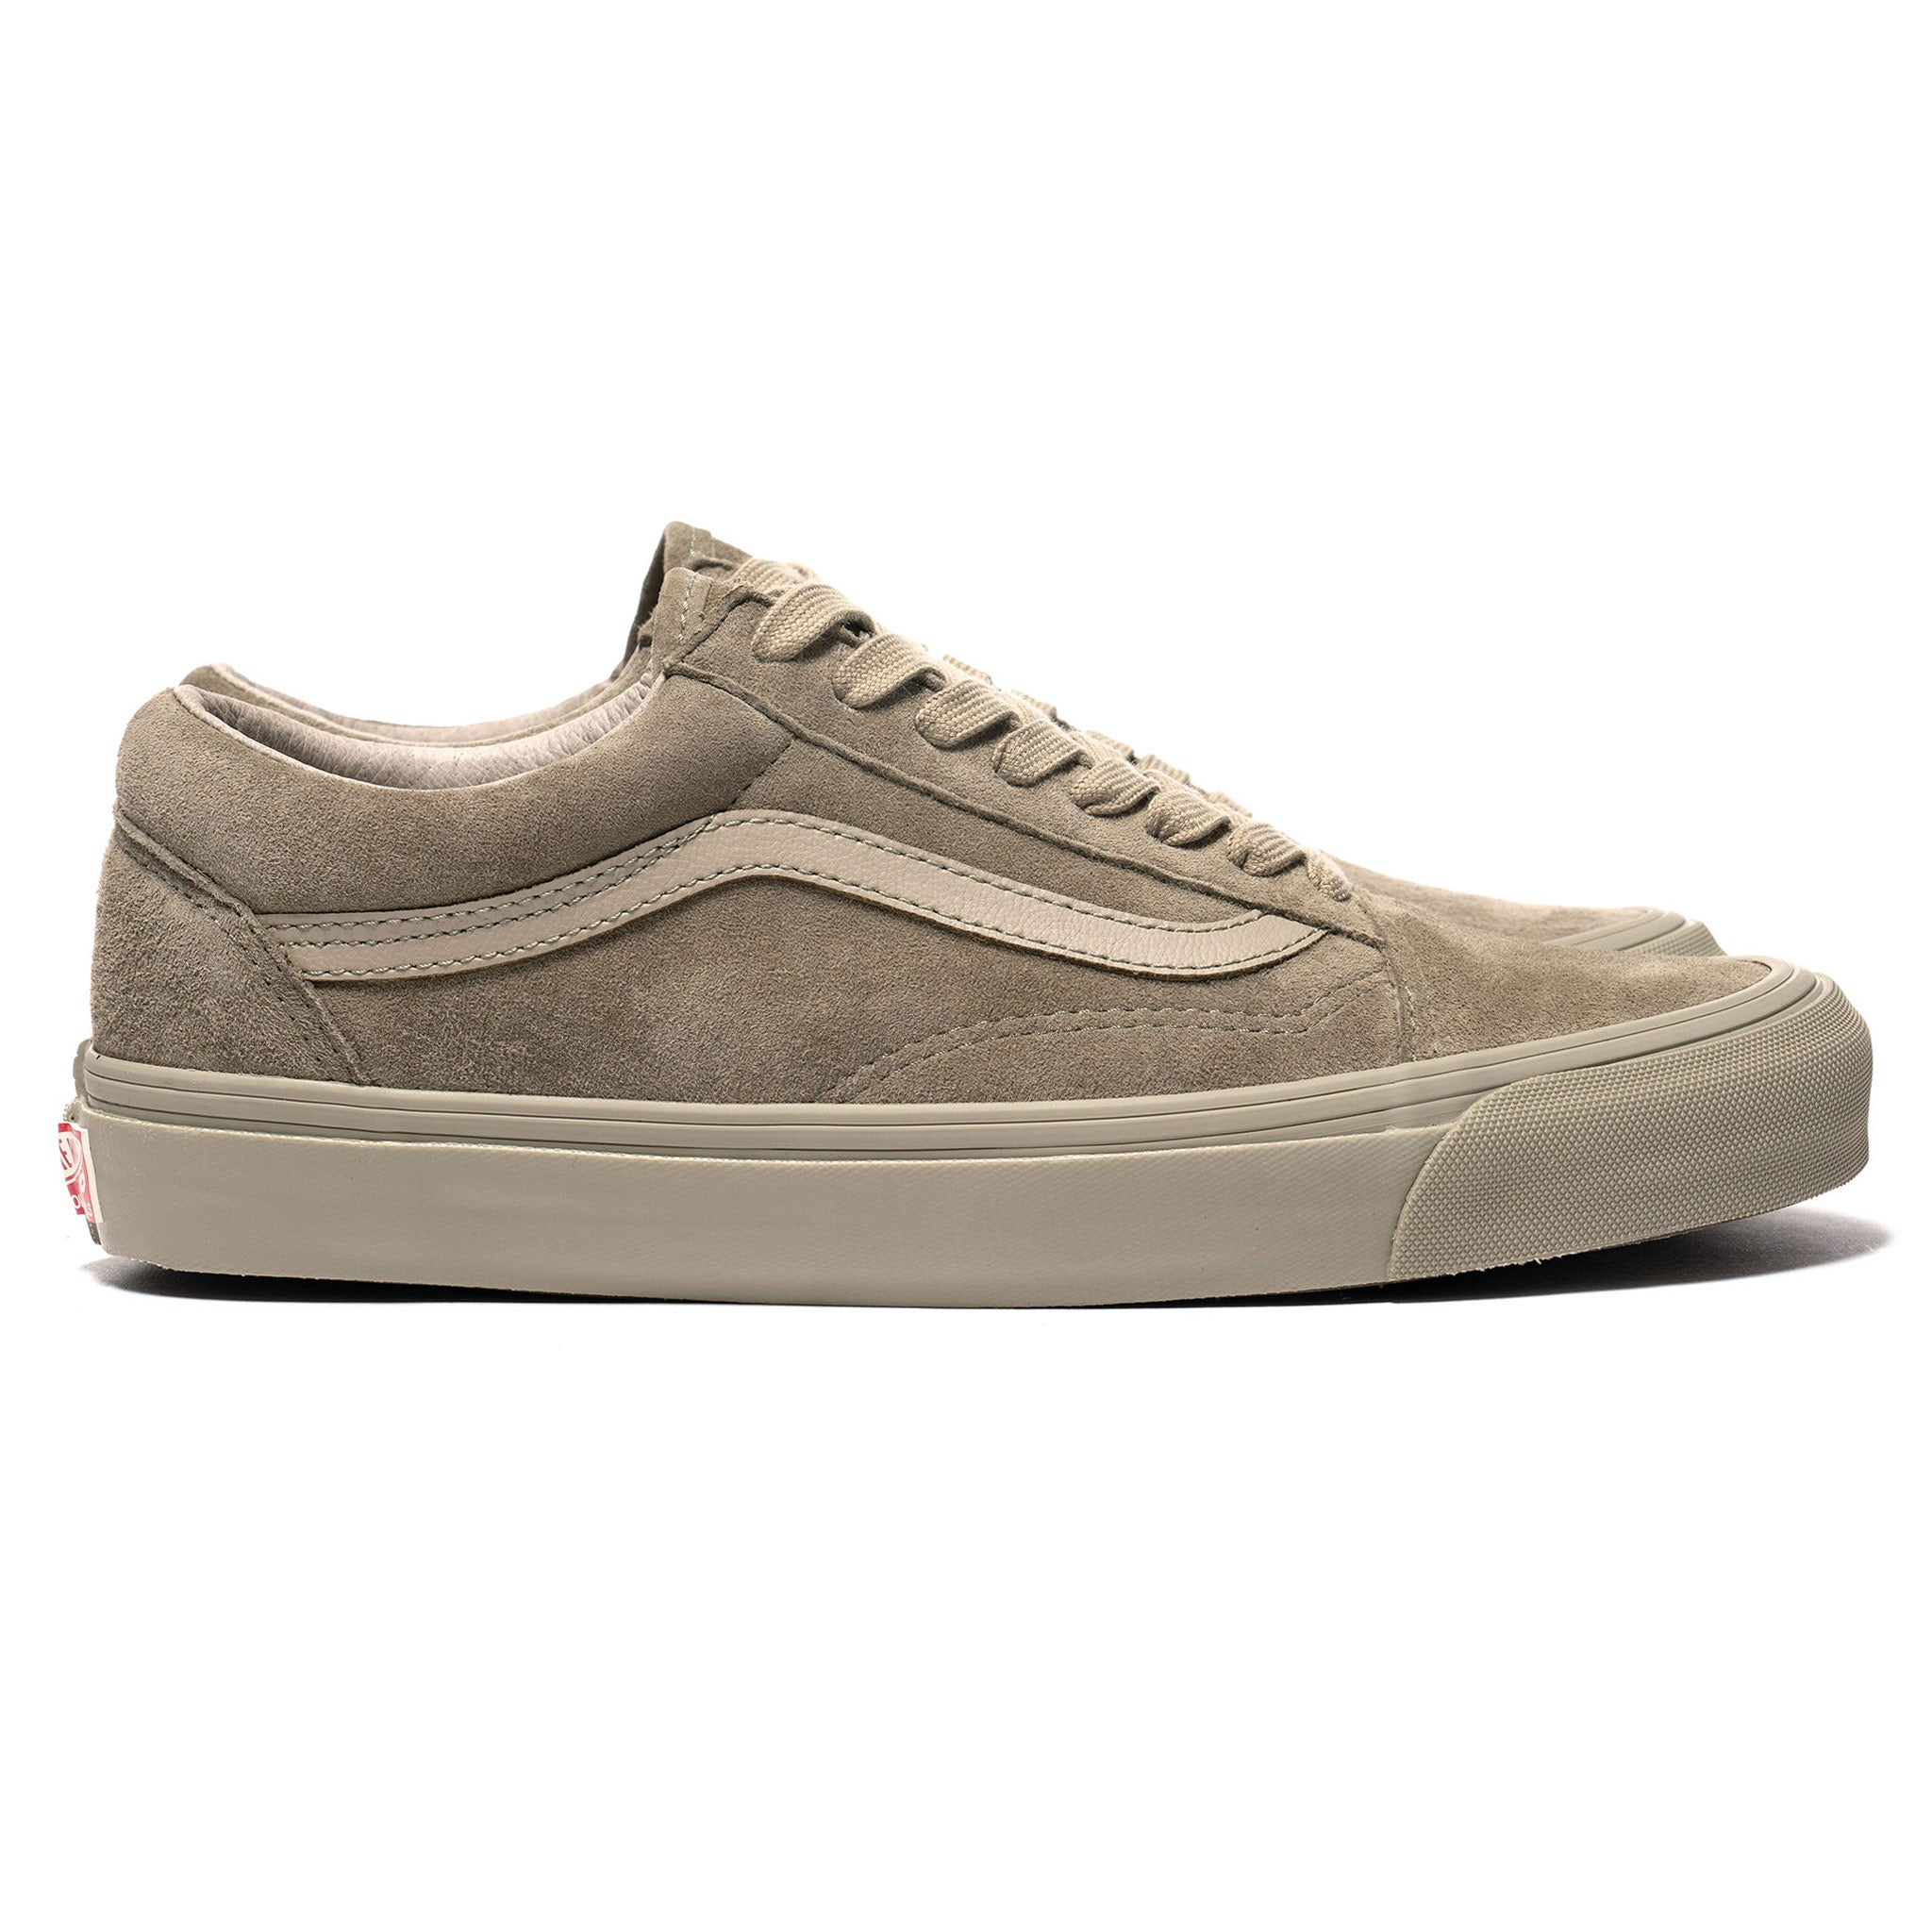 891815fd69450c OG Old Skool LX Plaze Taupe – HAVEN